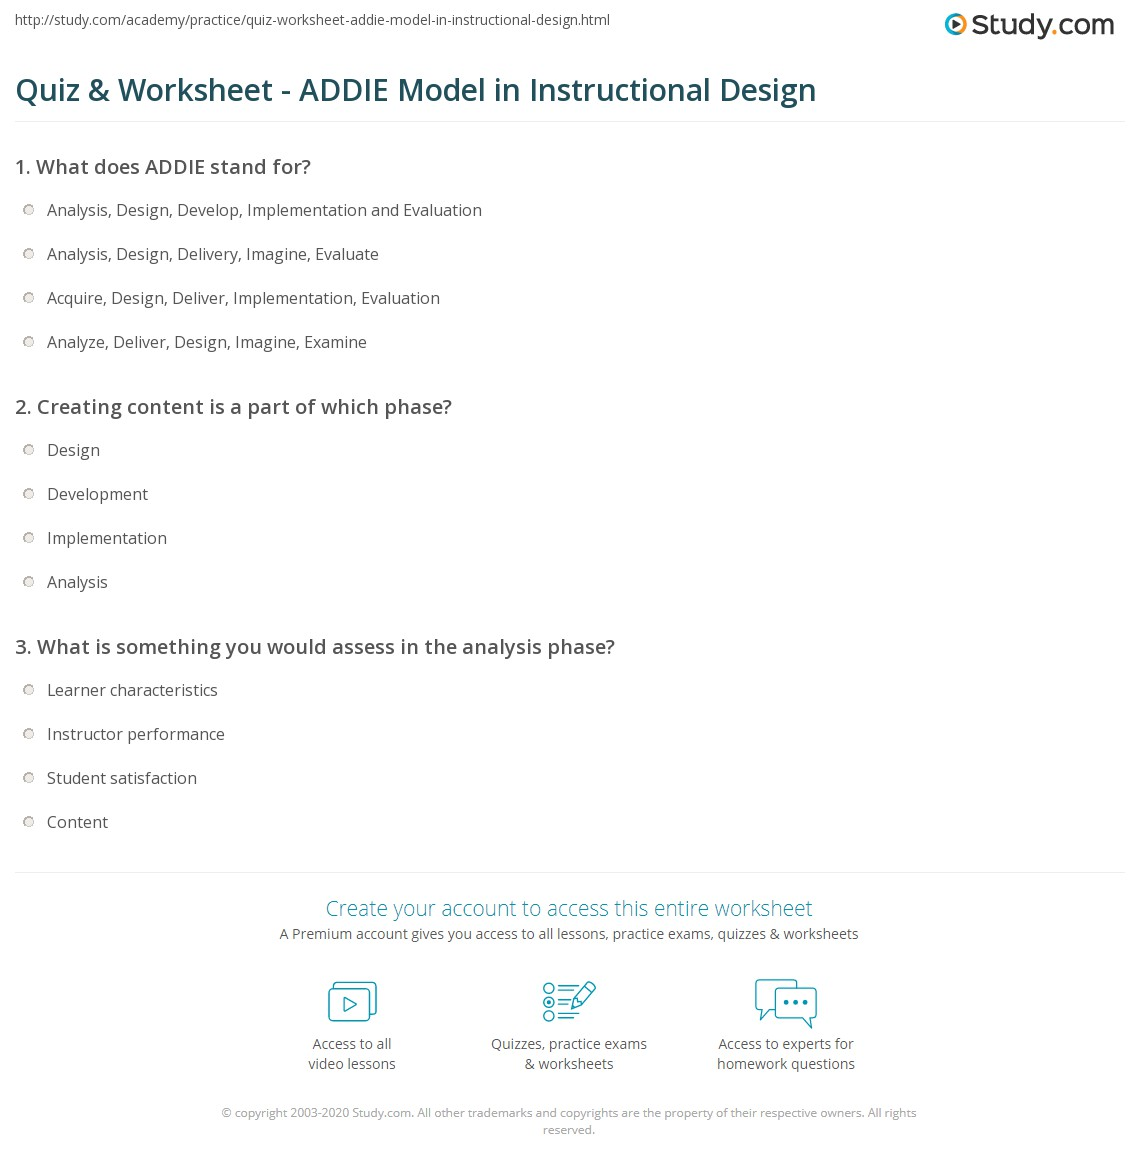 instructional design analysis template - quiz worksheet addie model in instructional design